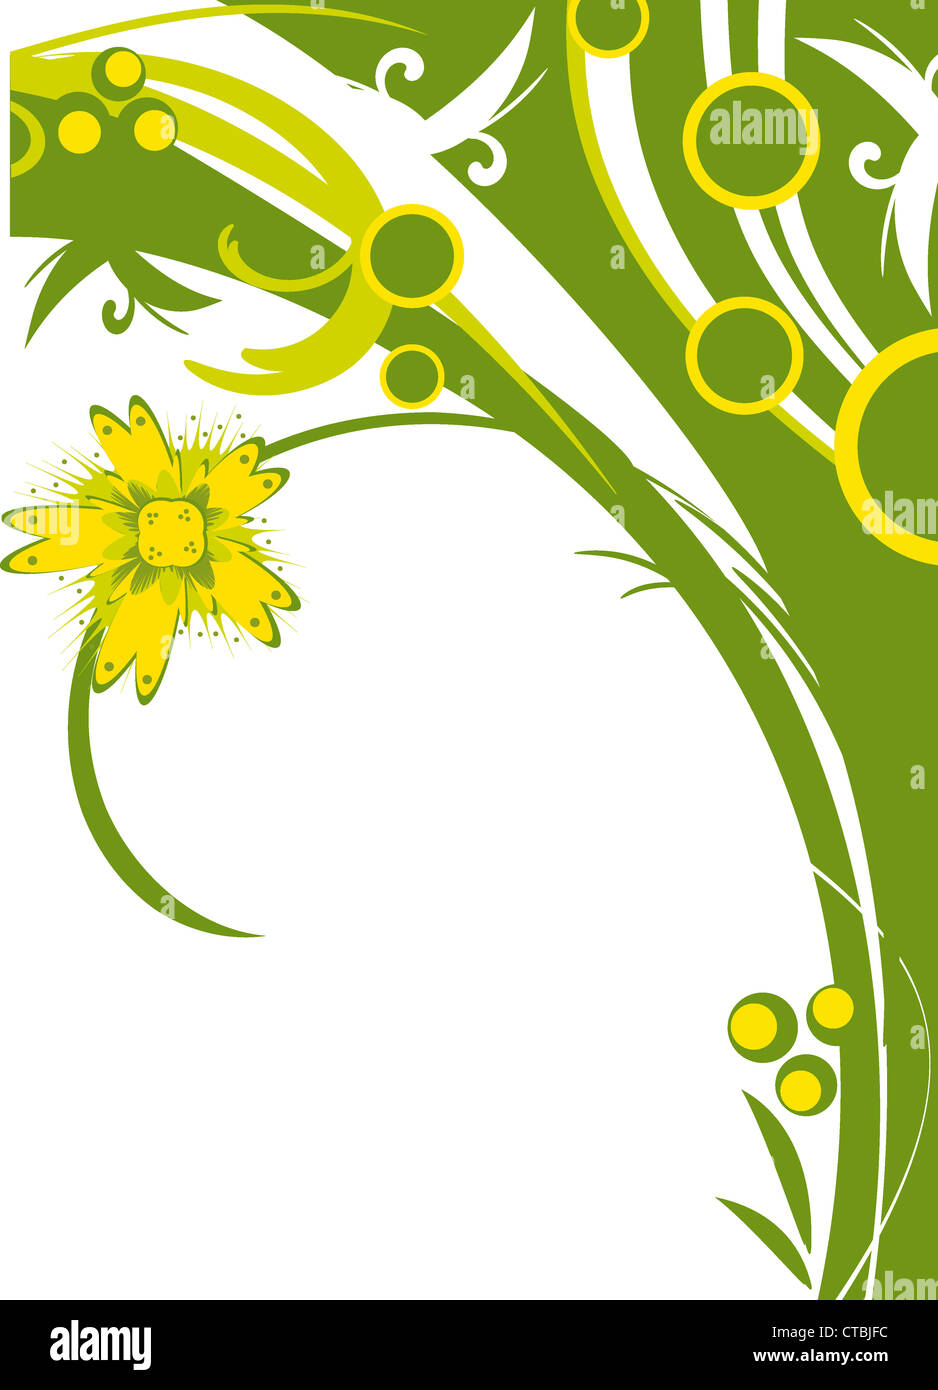 Abstract Floral Backgrounds For Your Design Abstract floral background for